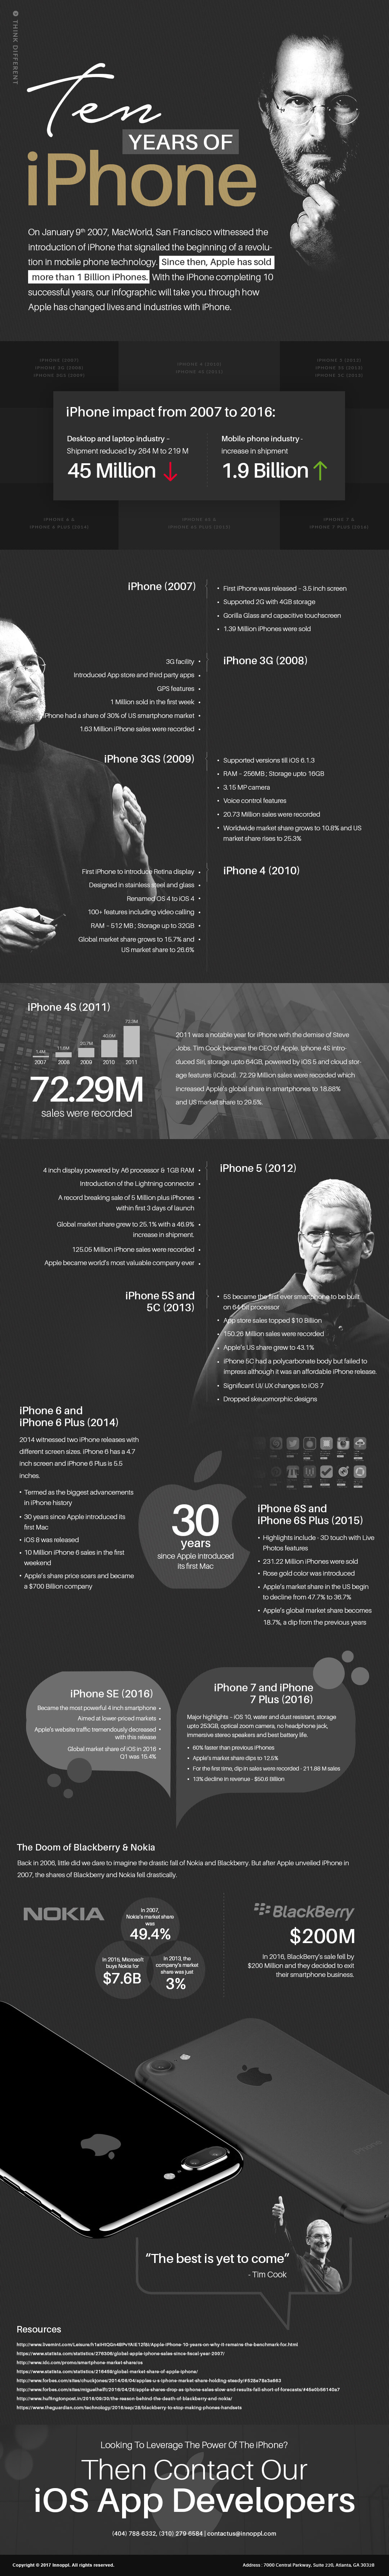 10-years-of-iphone-infographic-plaza